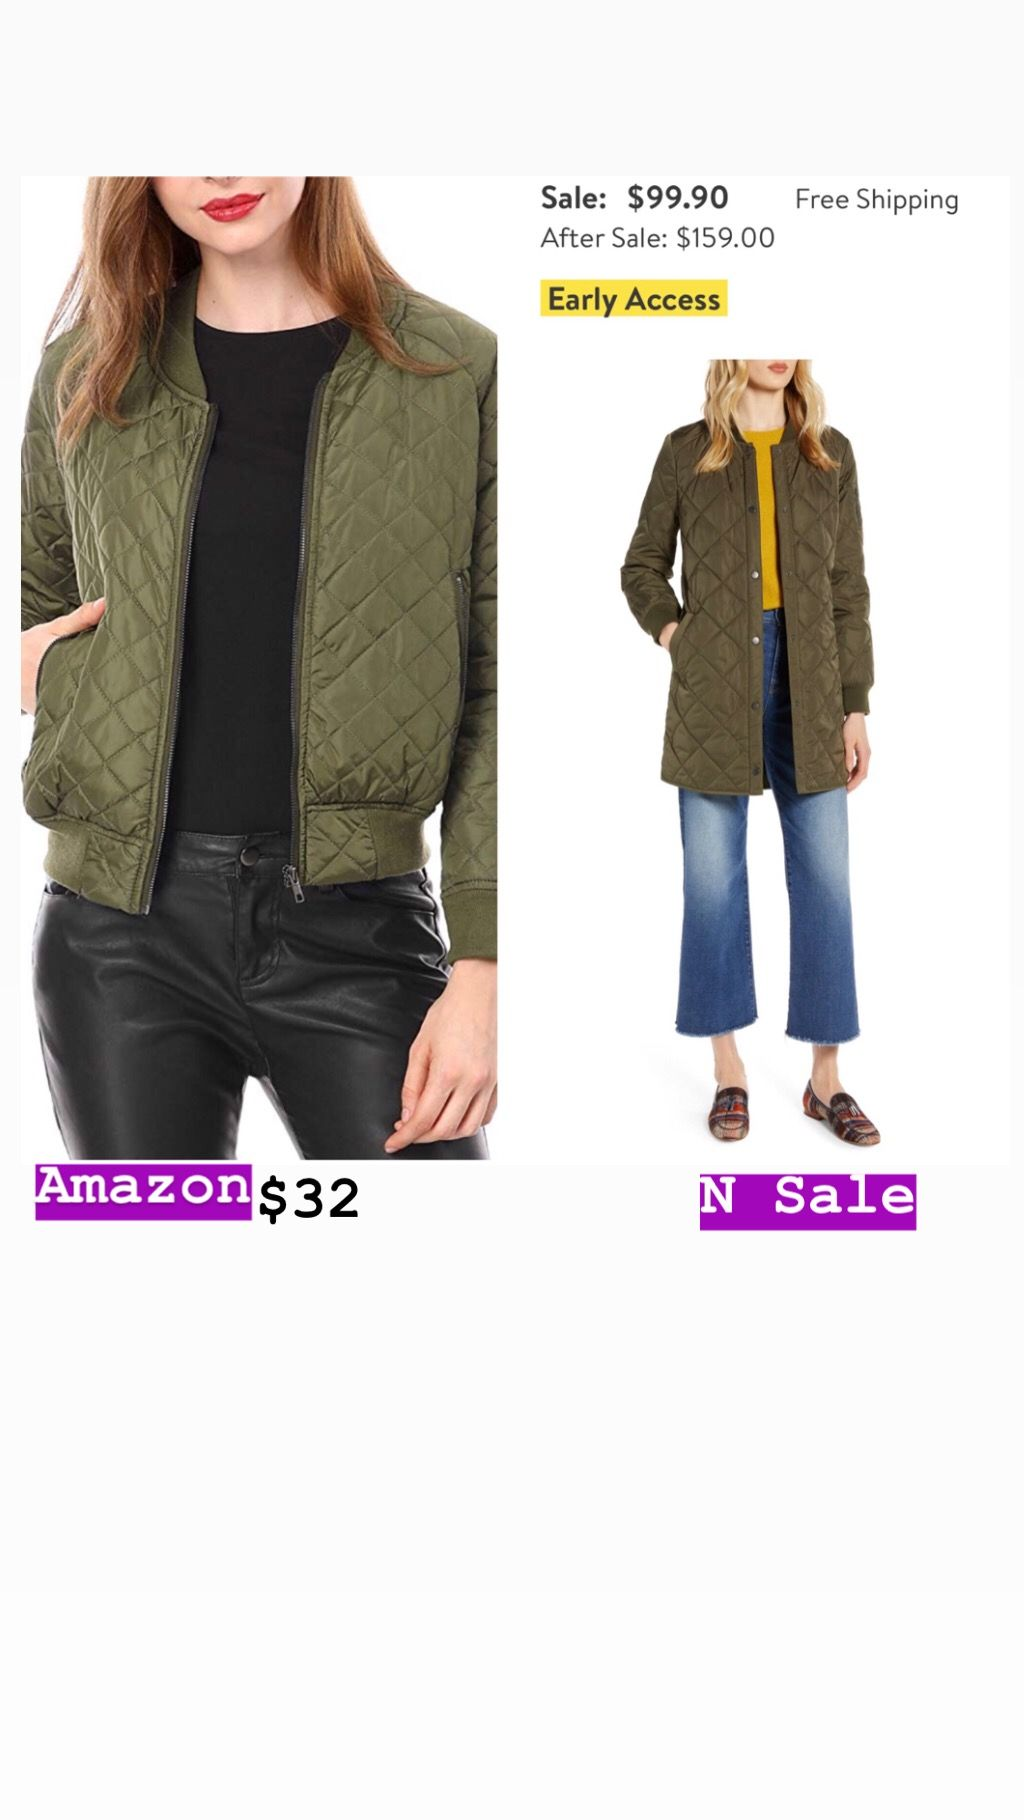 Amazon dupes for nordstrom sale 2019 ad nordstrom sale